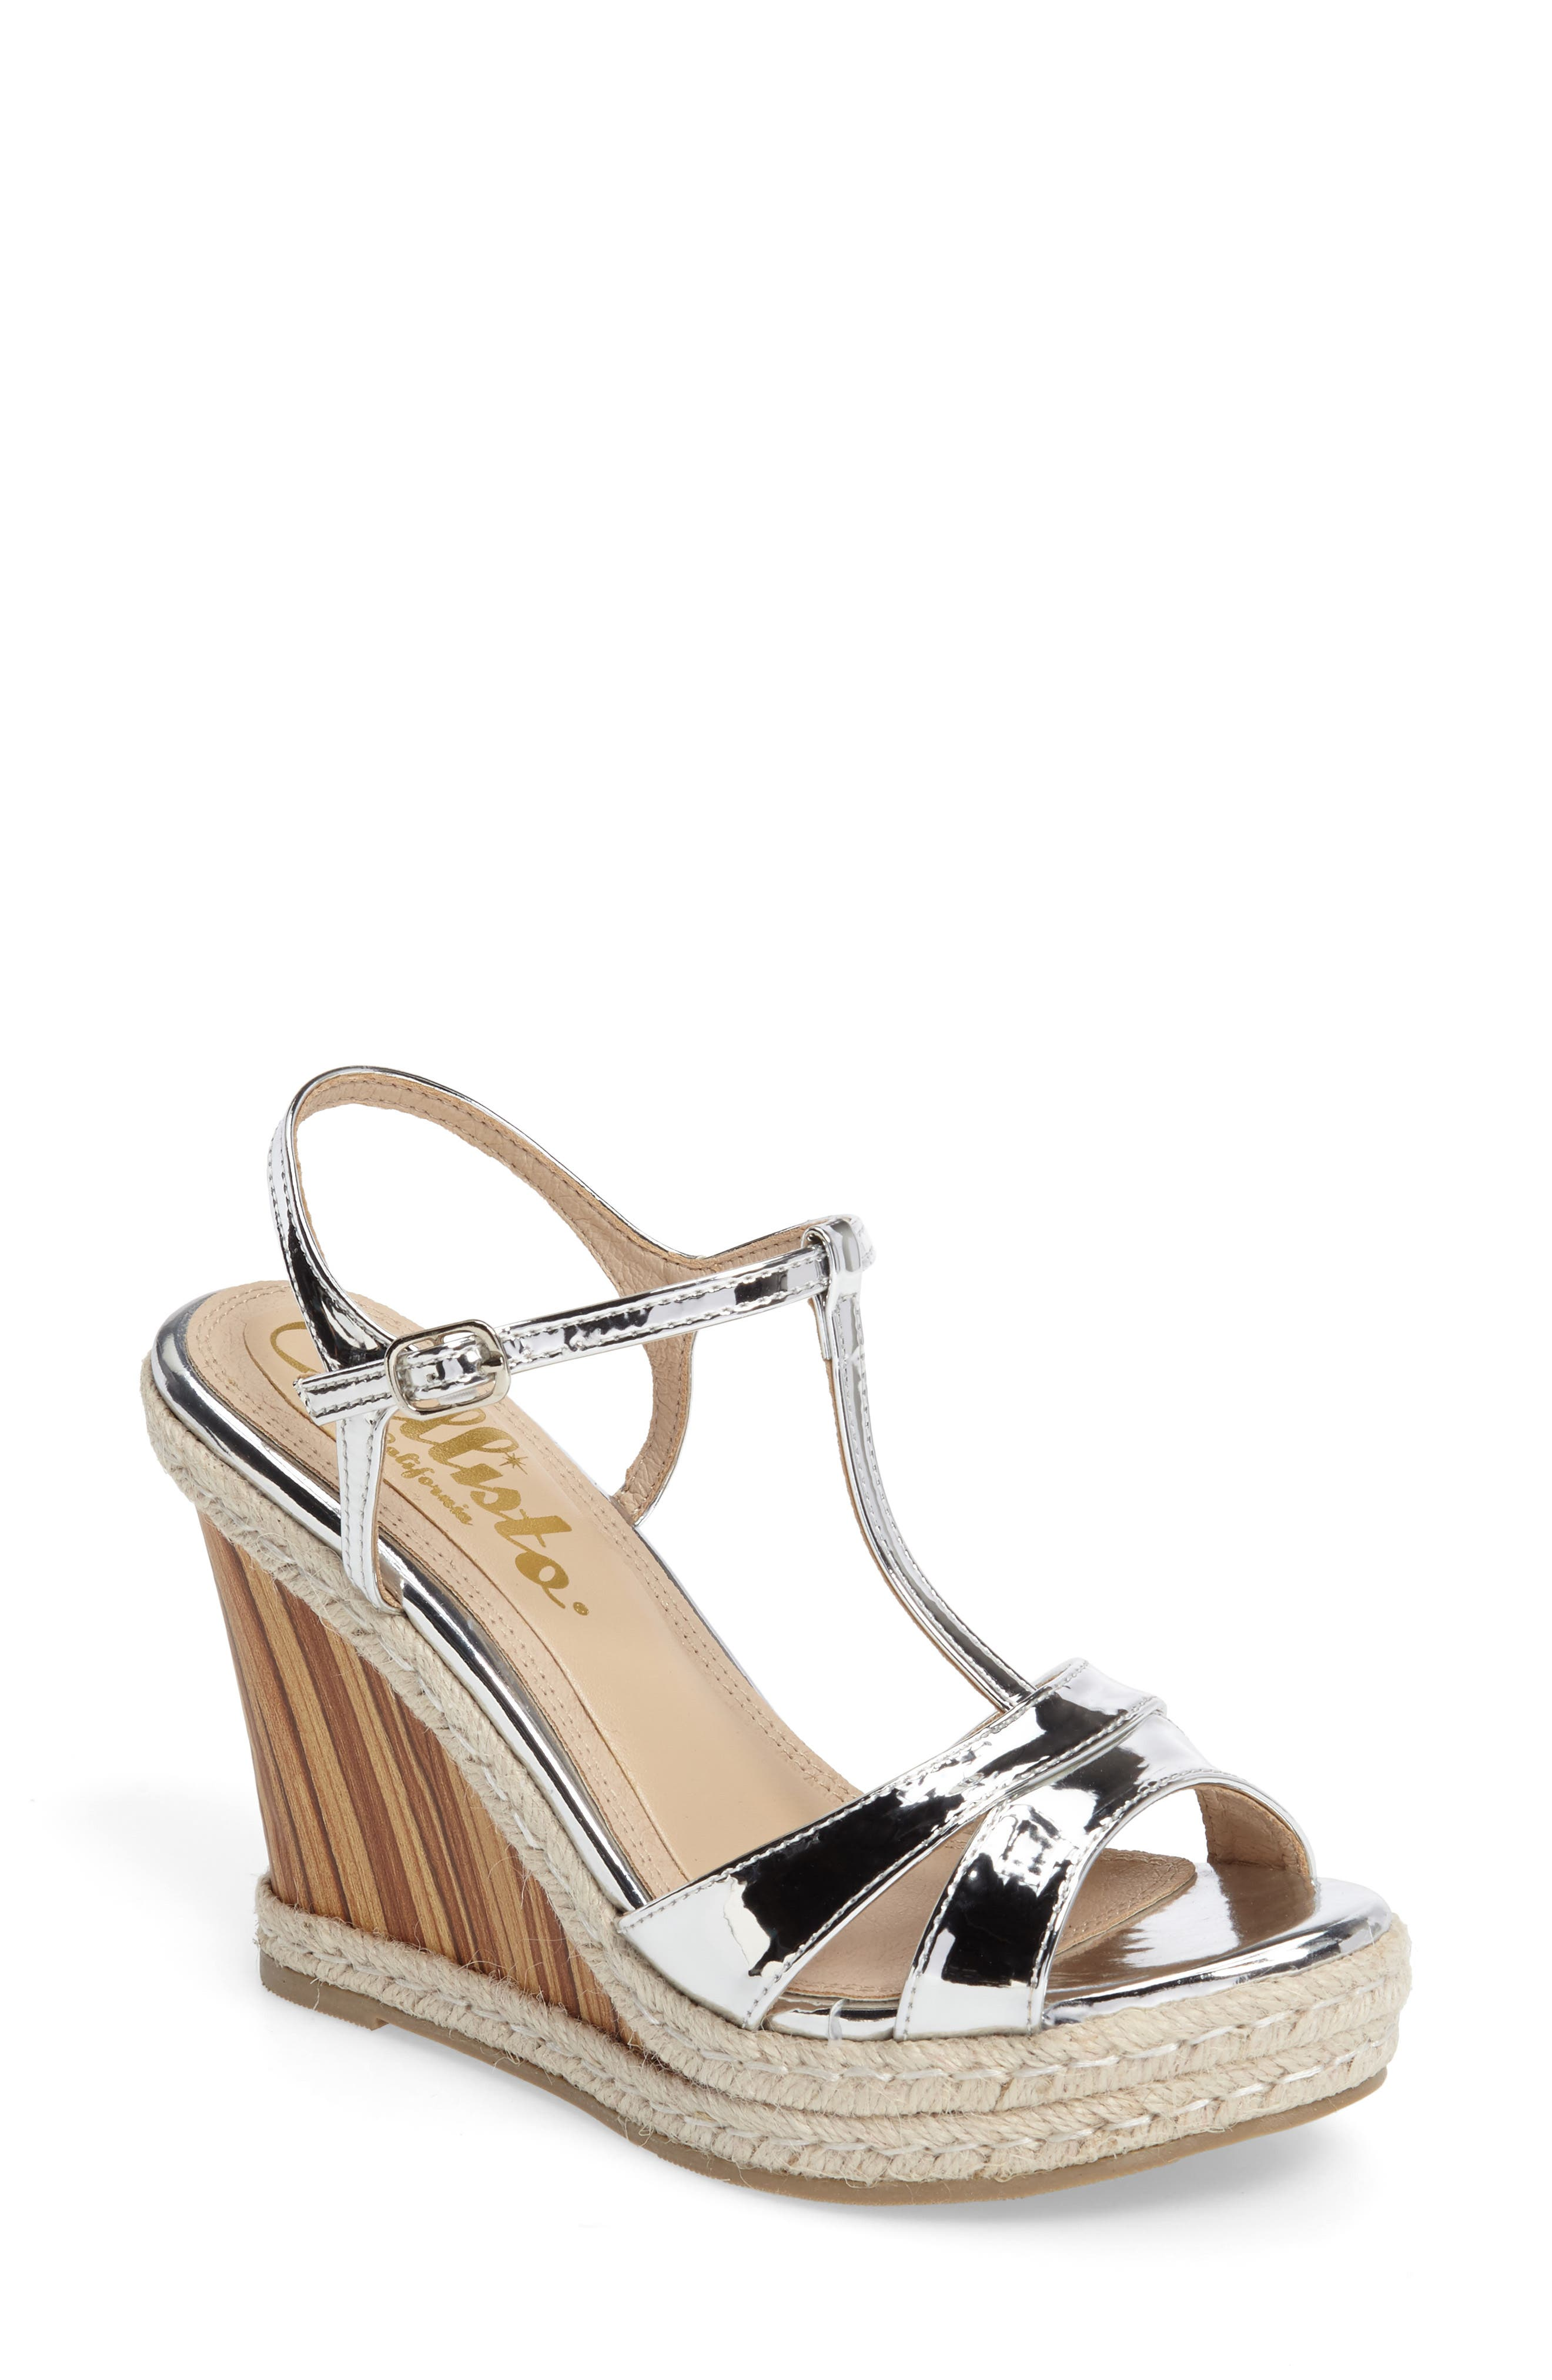 Alinna T-Strap Wedge Sandal,                         Main,                         color, Silver Faux Leather